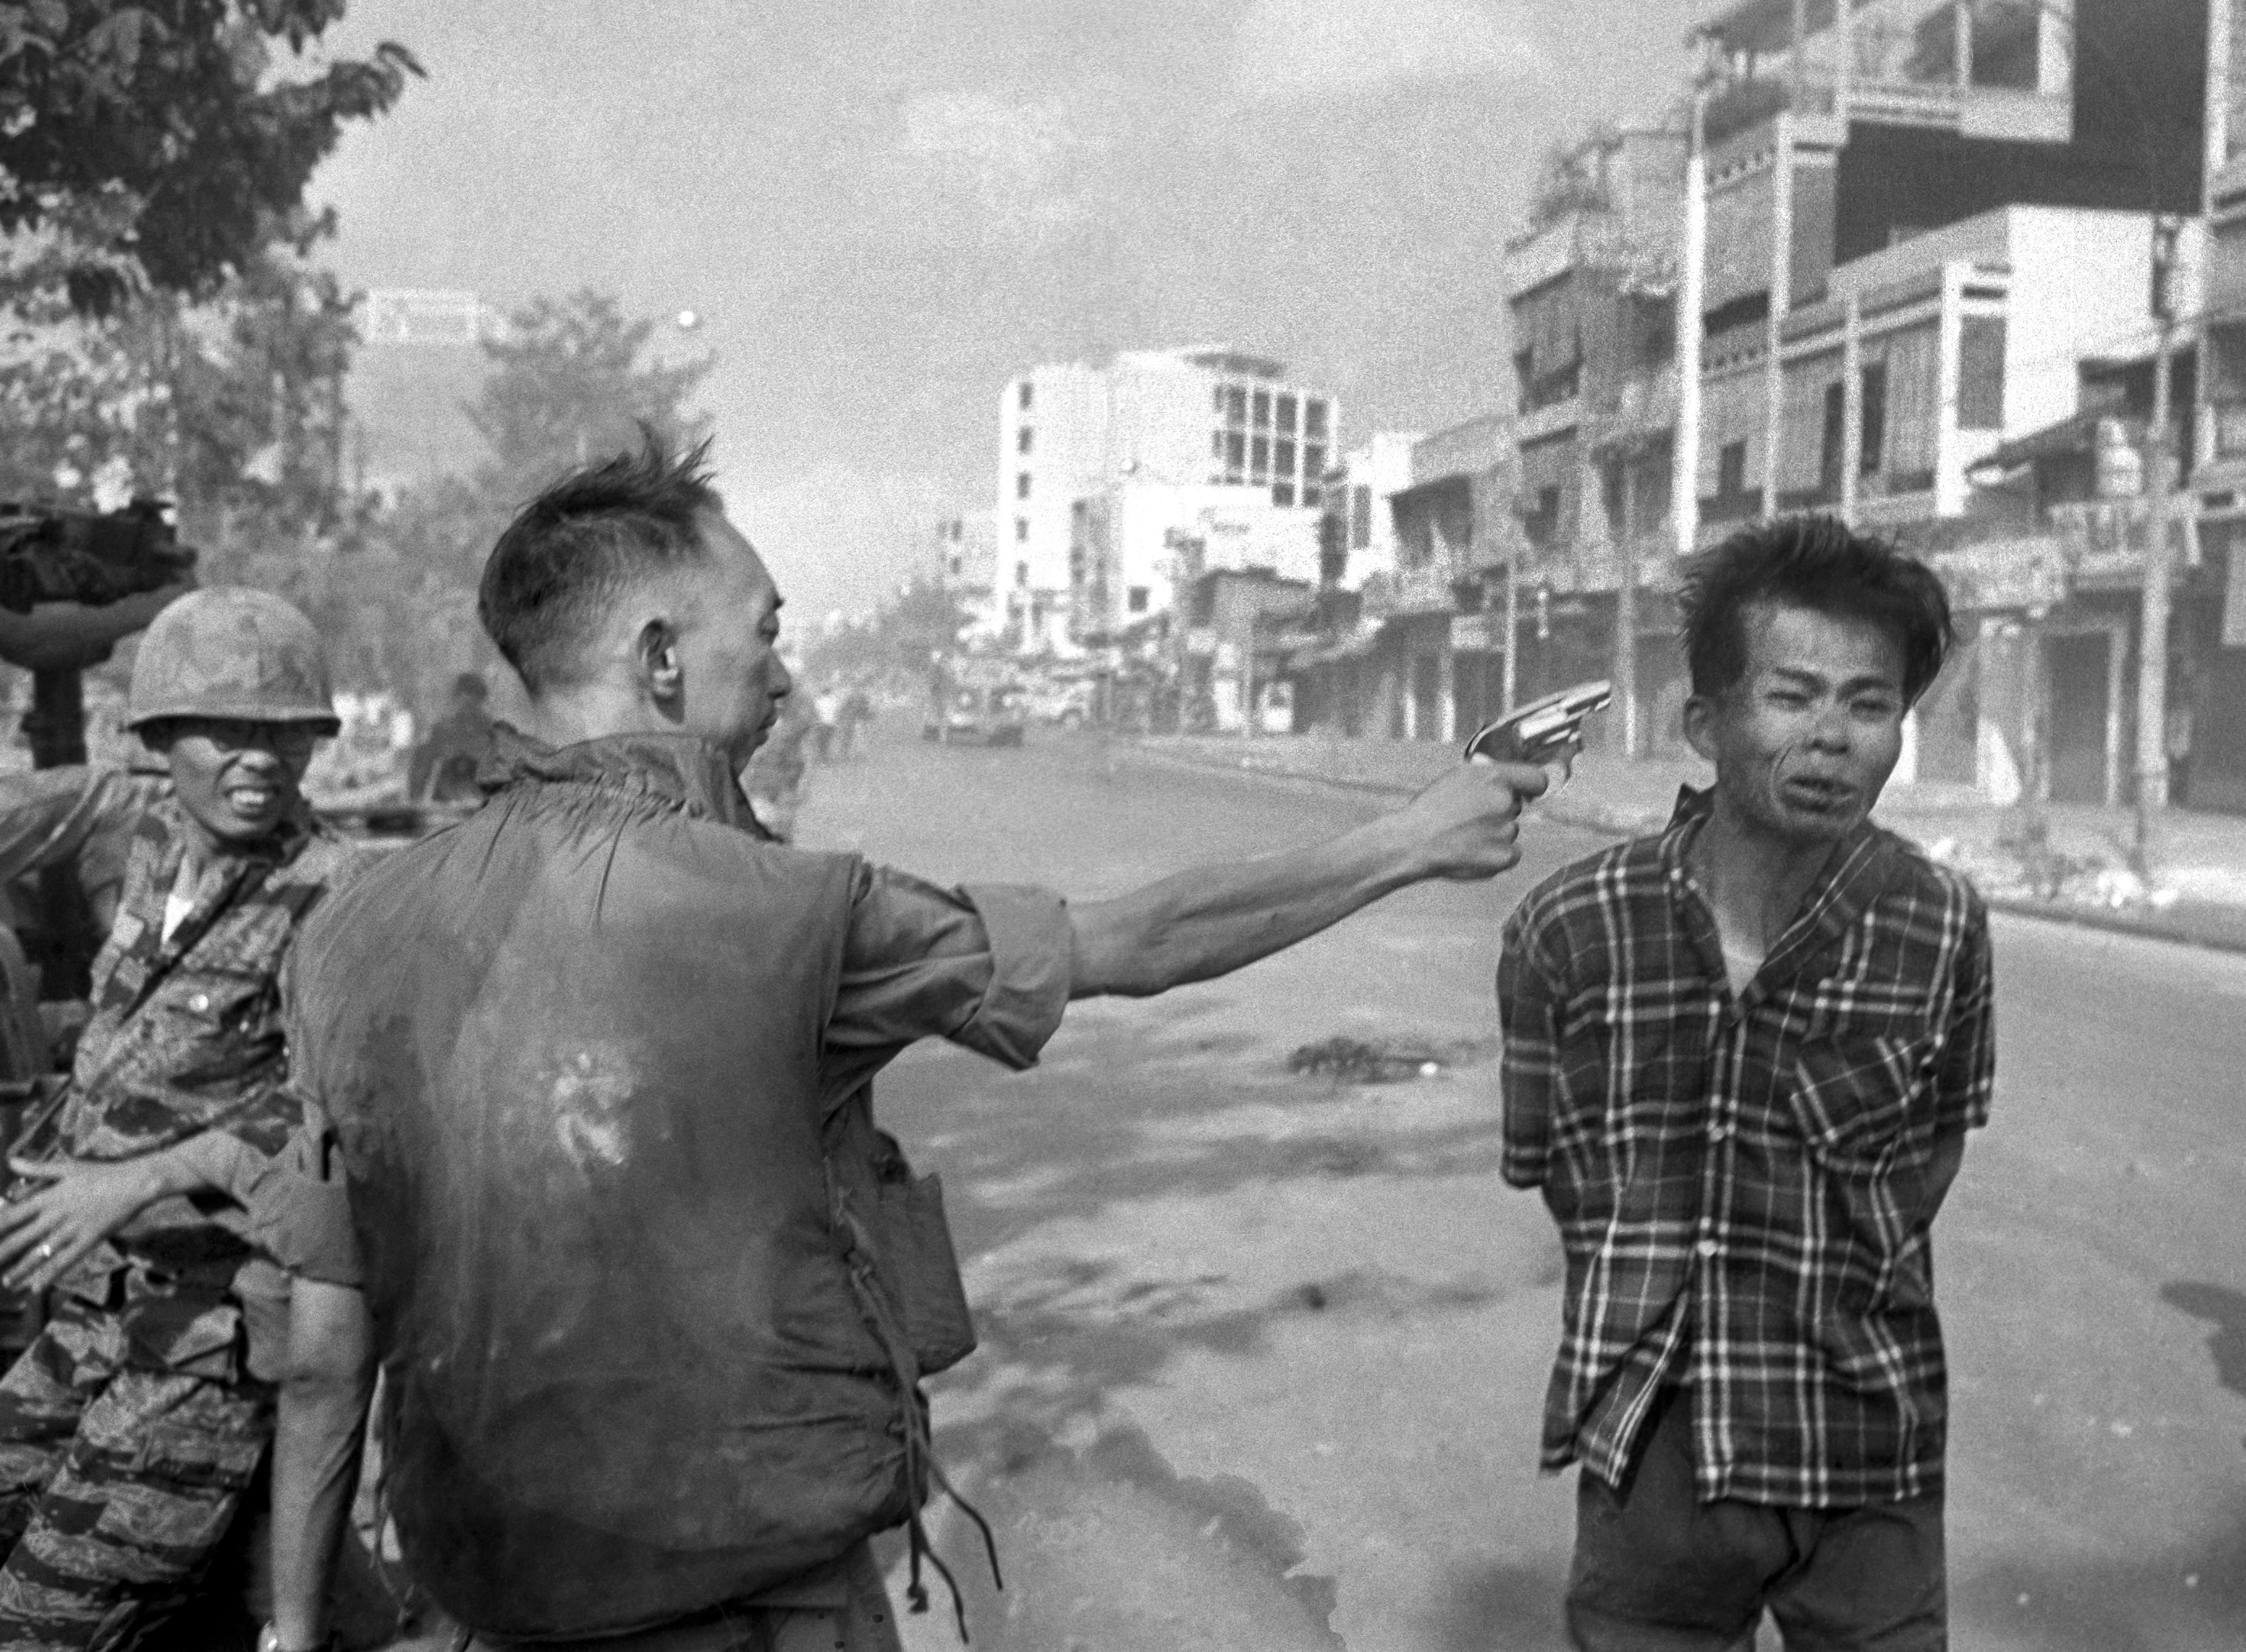 South Vietnamese Gen. Nguyen Ngoc Loan, chief of the national police, fires his pistol into the head of suspected Viet Cong officer Nguyen Van Lem (also known as Bay Lop) on a Saigon street Feb. 1, 1968, early in the Tet Offensive. The general said Nguyen Van Lem was responsible for numerous Vietnamese and American deaths. (AP Photo/Eddie Adams)